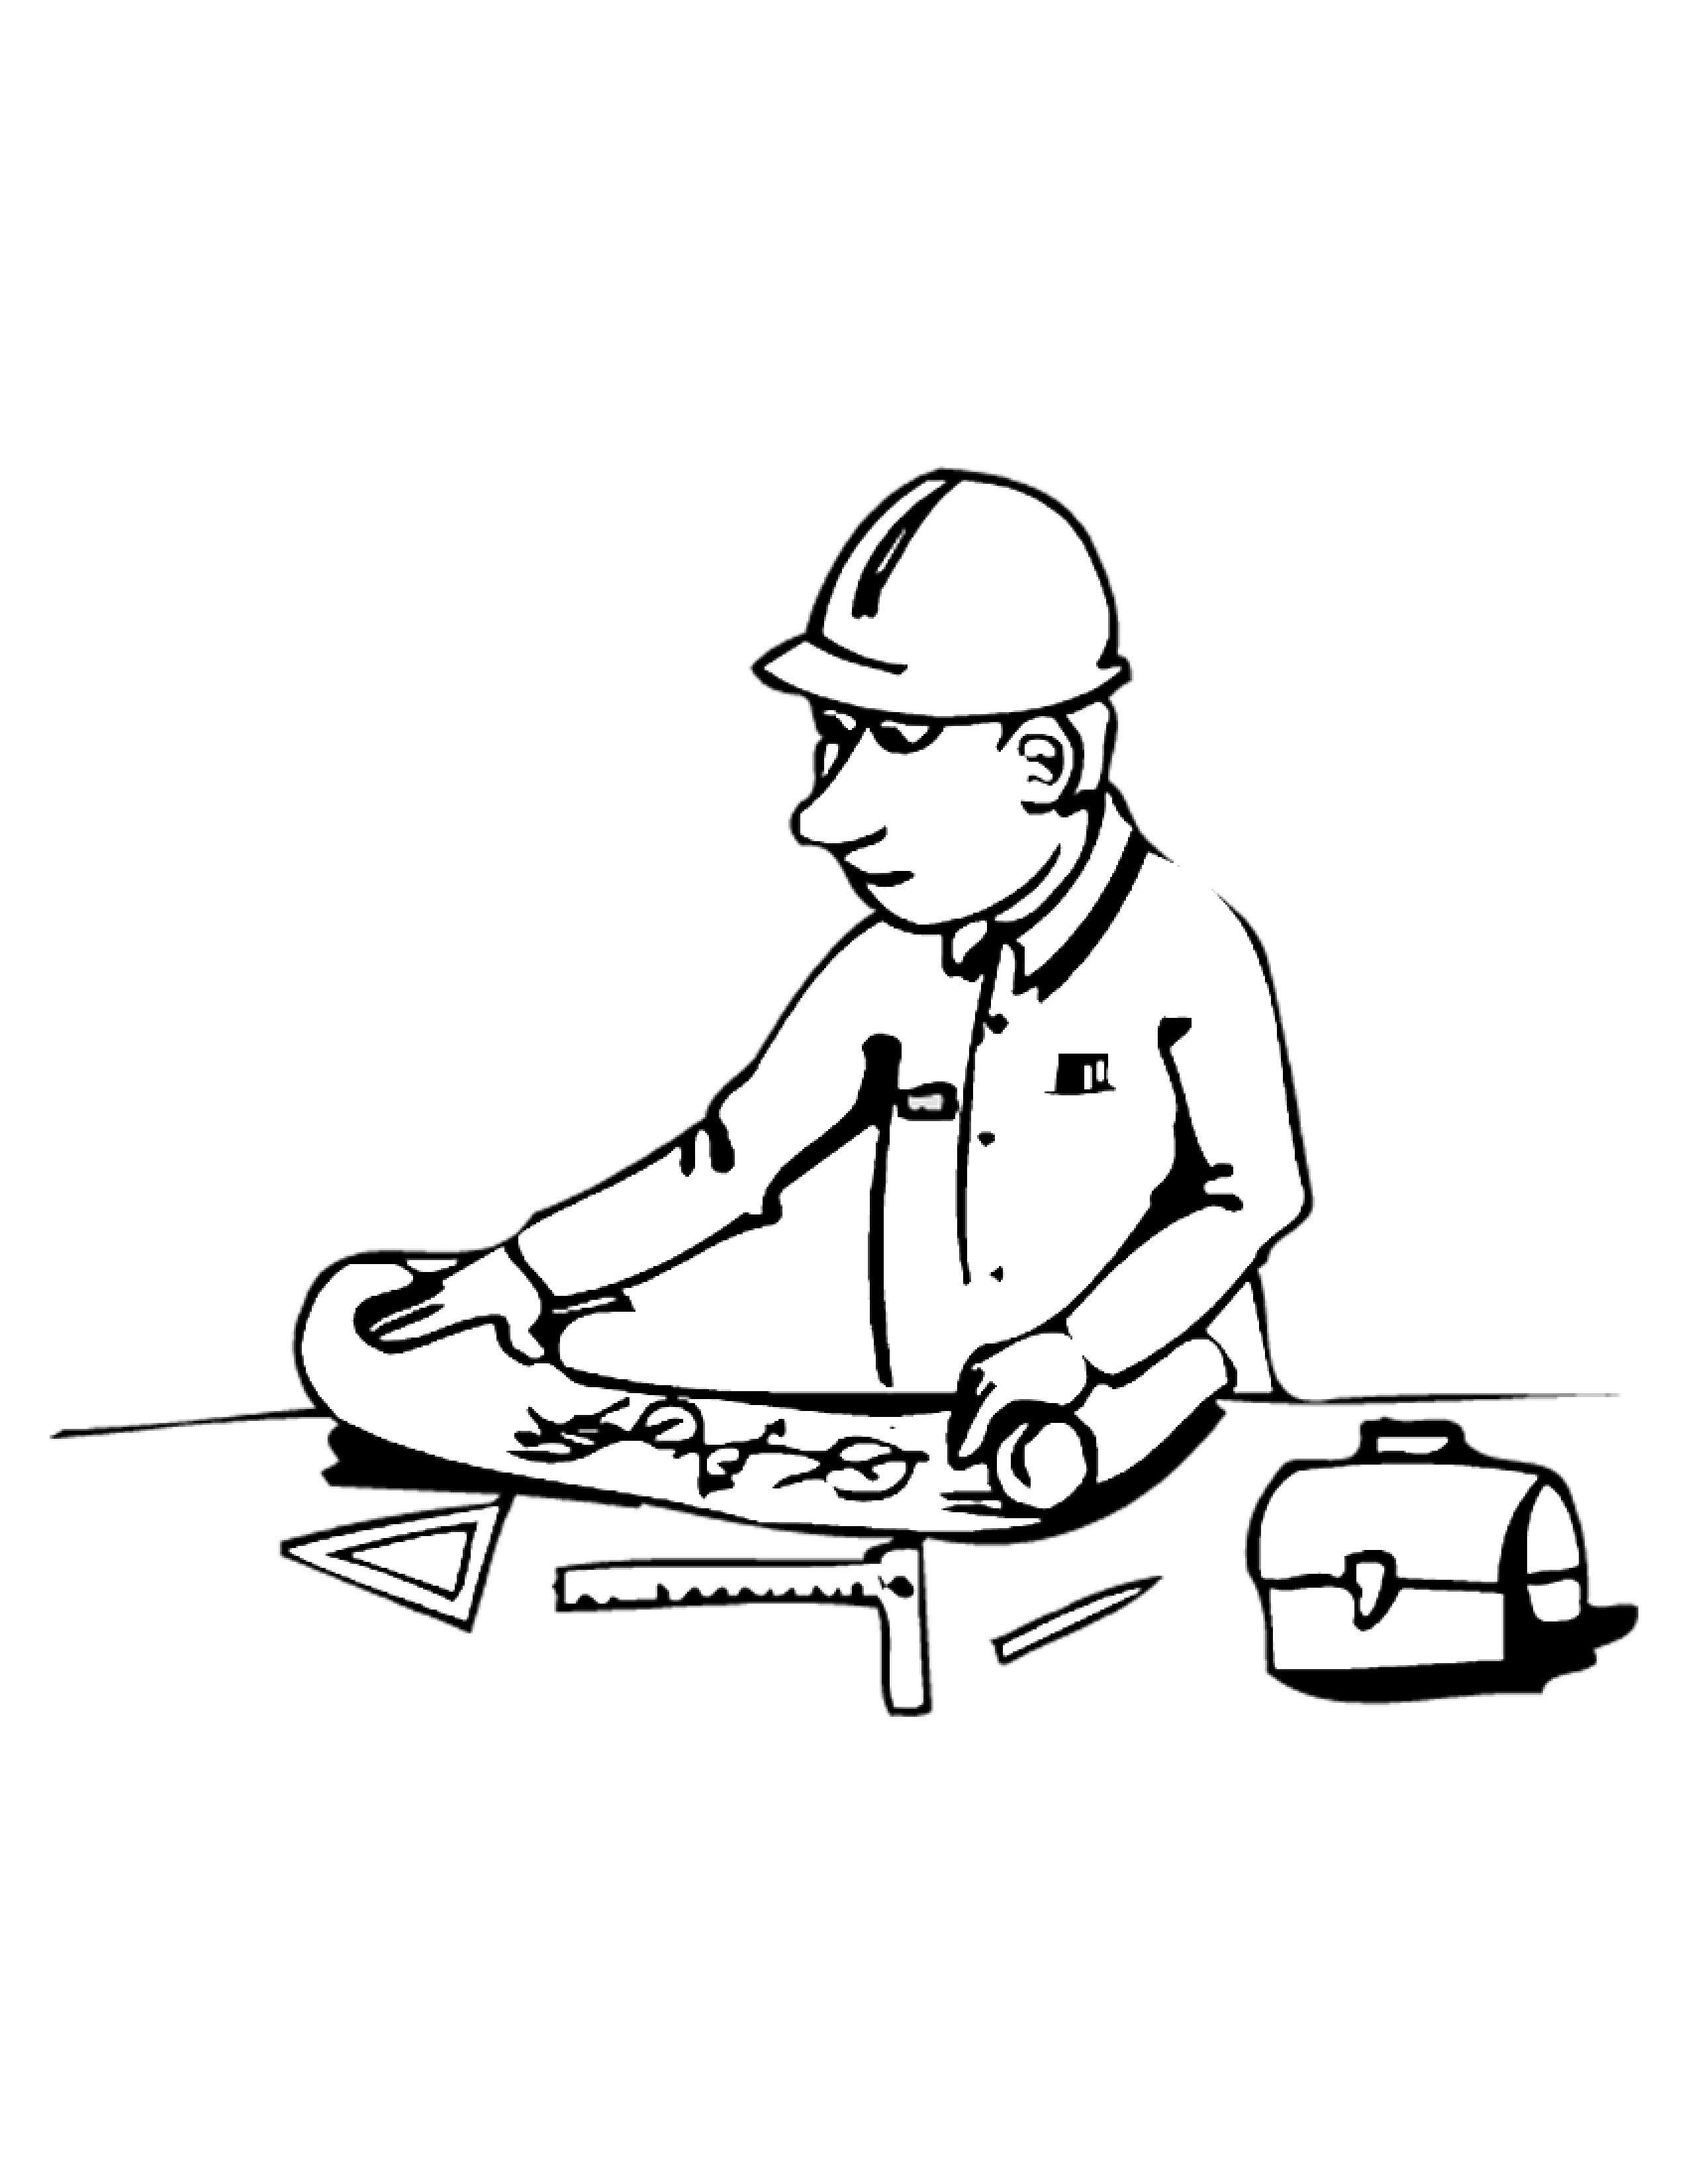 Construction Equipment Coloring Pages | Clipart Panda ...